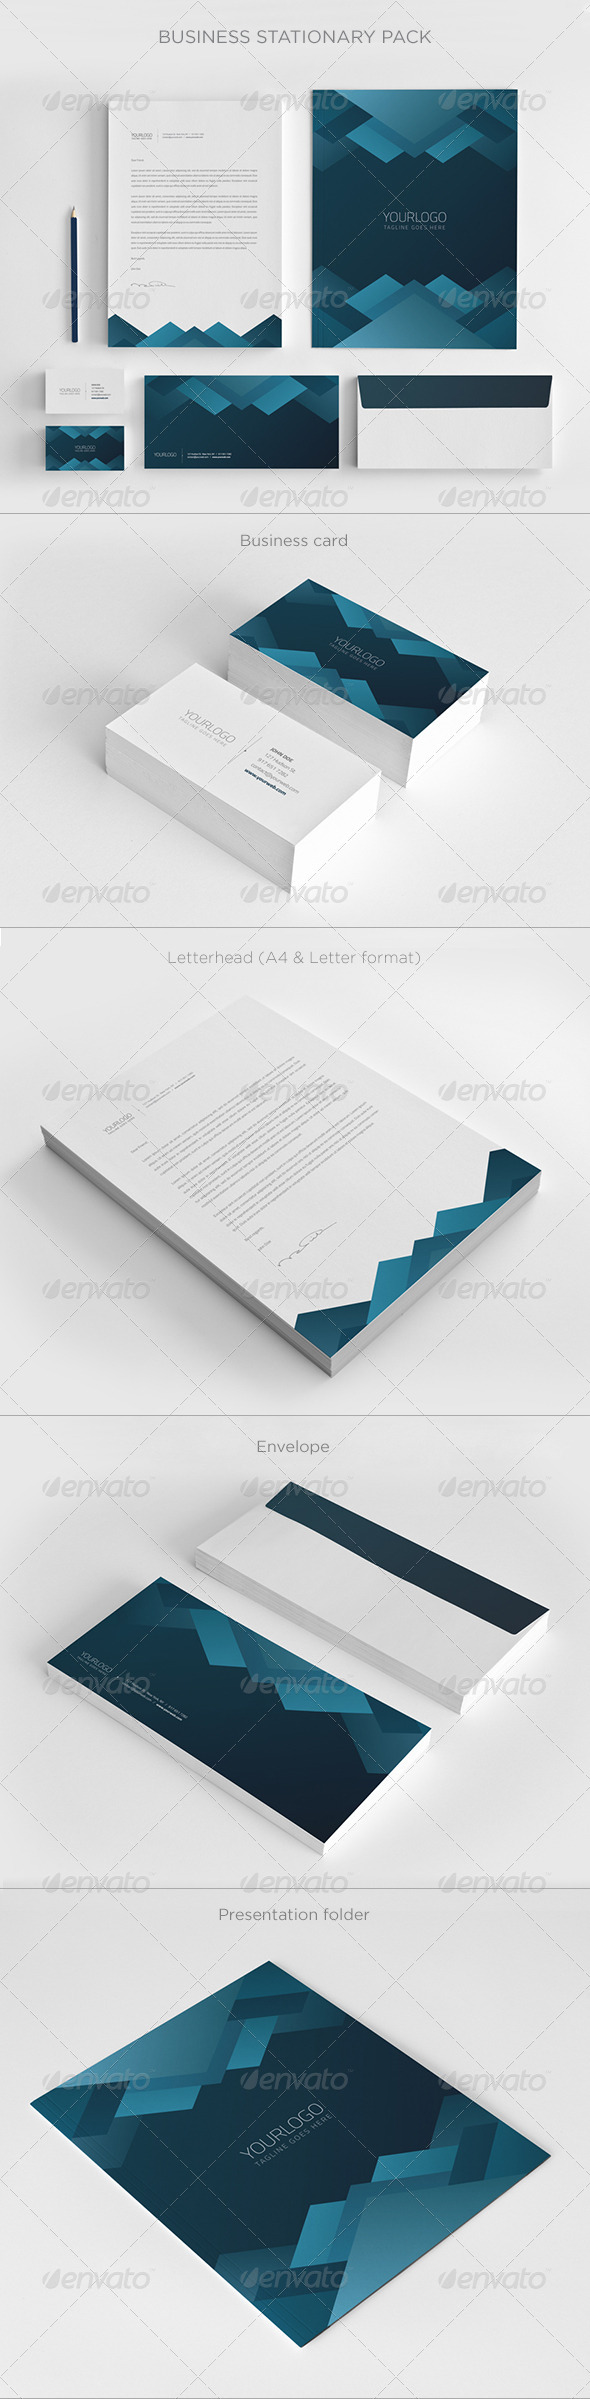 Business Stationary Pack III - Stationery Print Templates